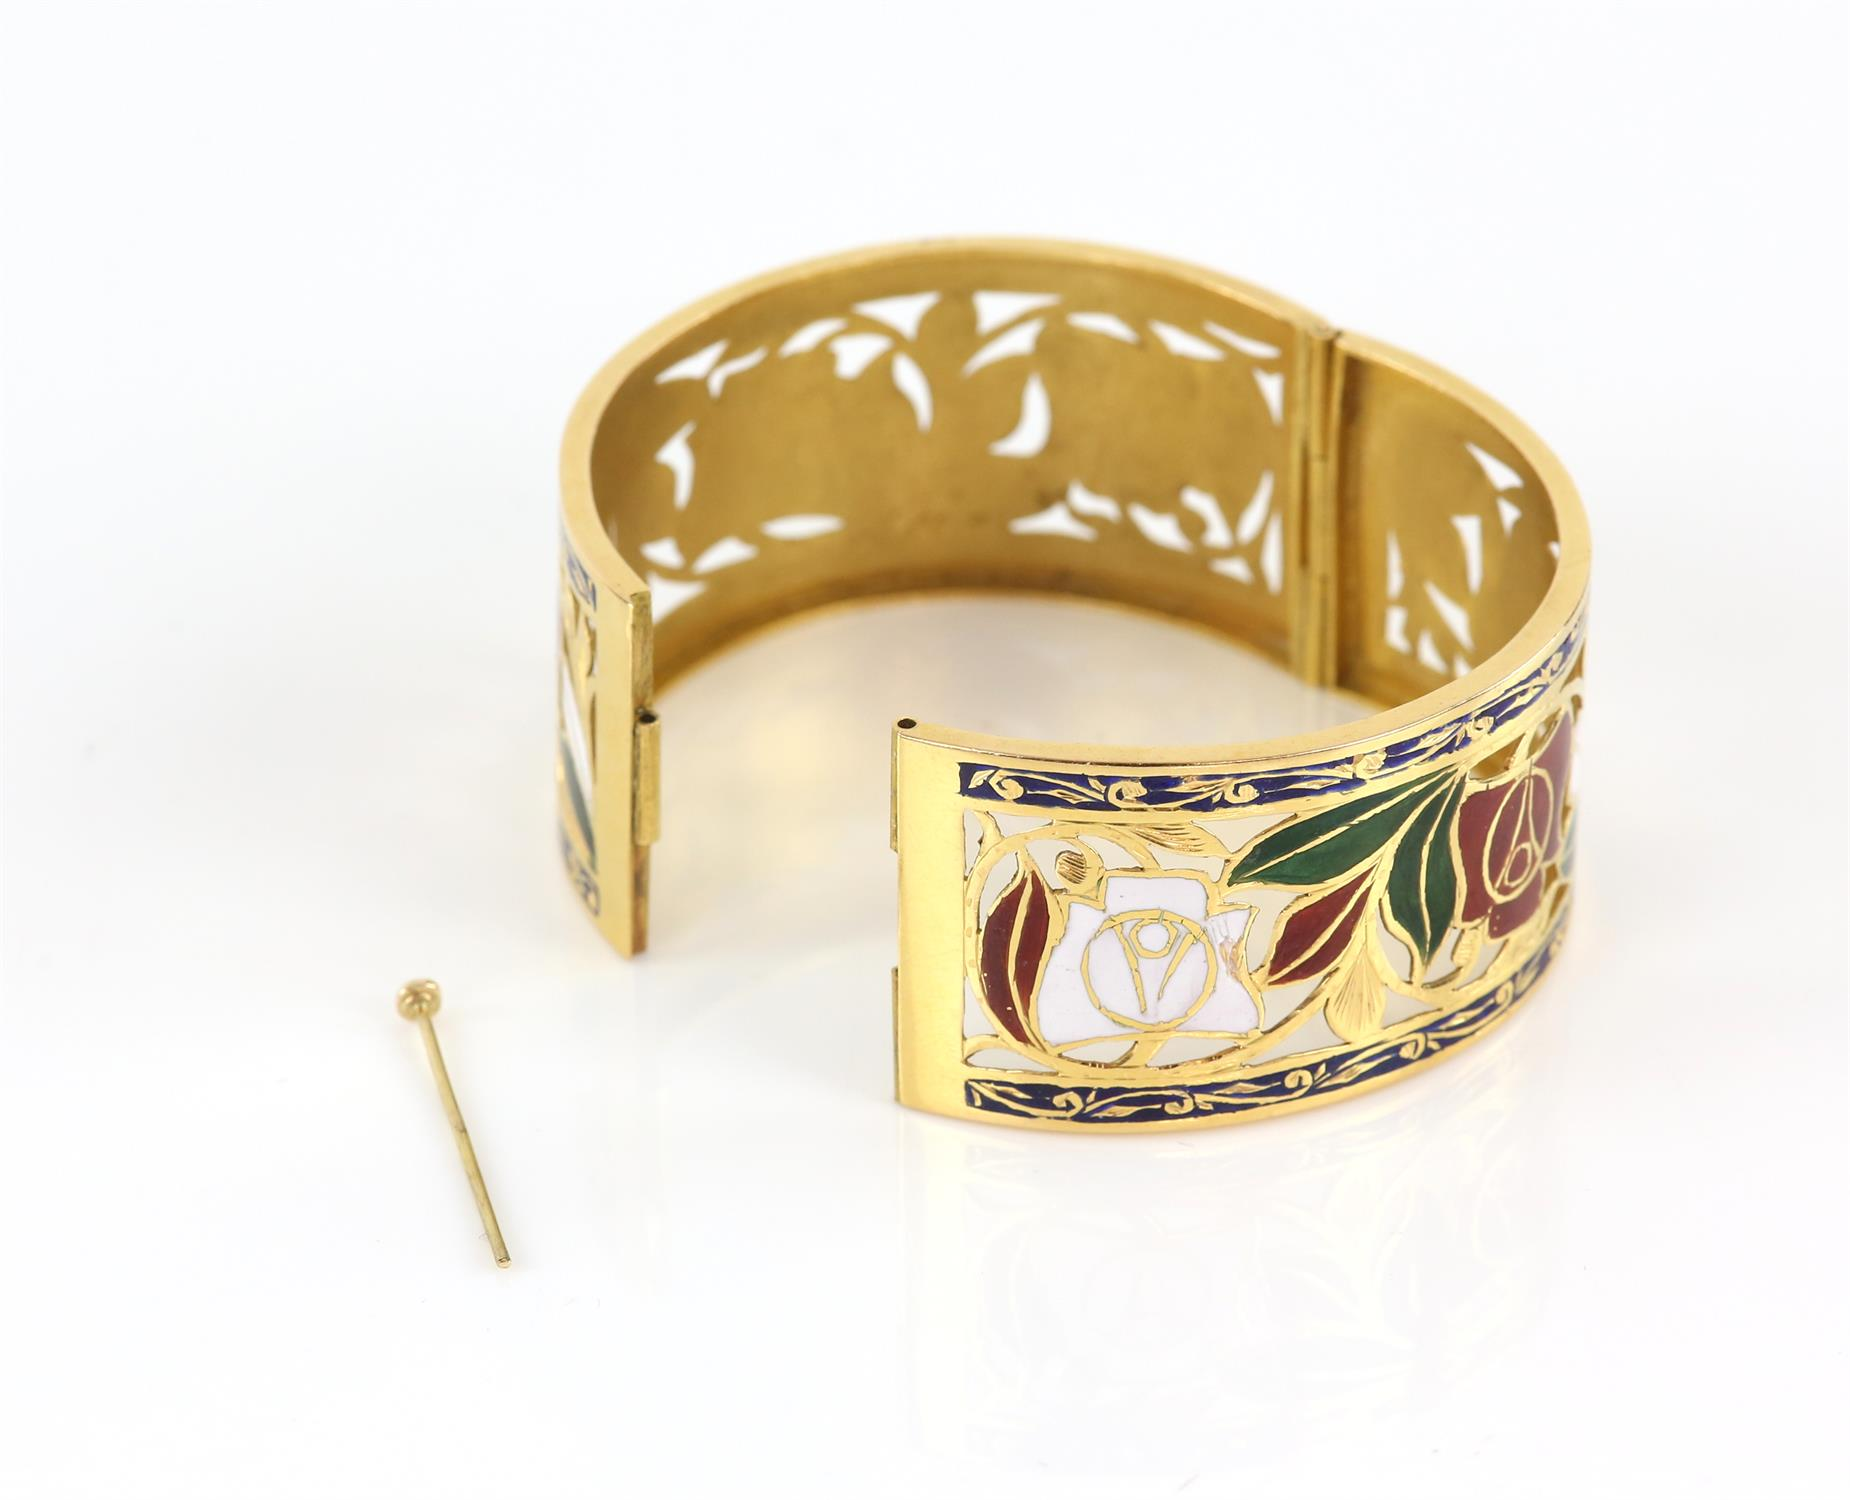 Enamel red and white rose gold pierced bangle, with enamel leaves and scrolled blue enamel borders, - Image 7 of 7